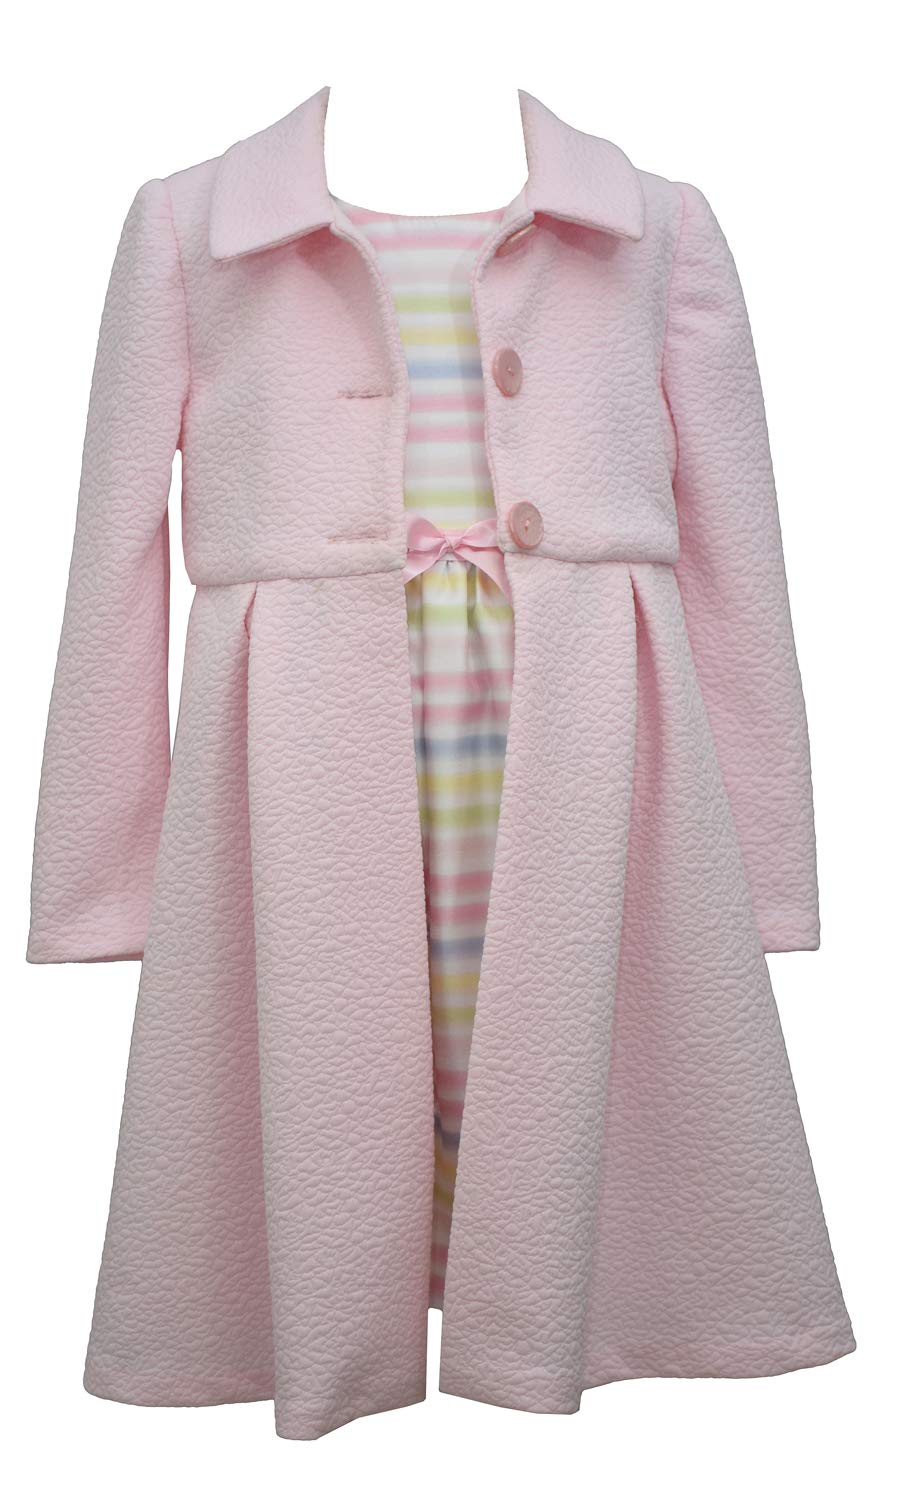 Bonnie Jean Girl's Easter Dress and Coat Set - for Baby, Infant, Toddler and Little Girls